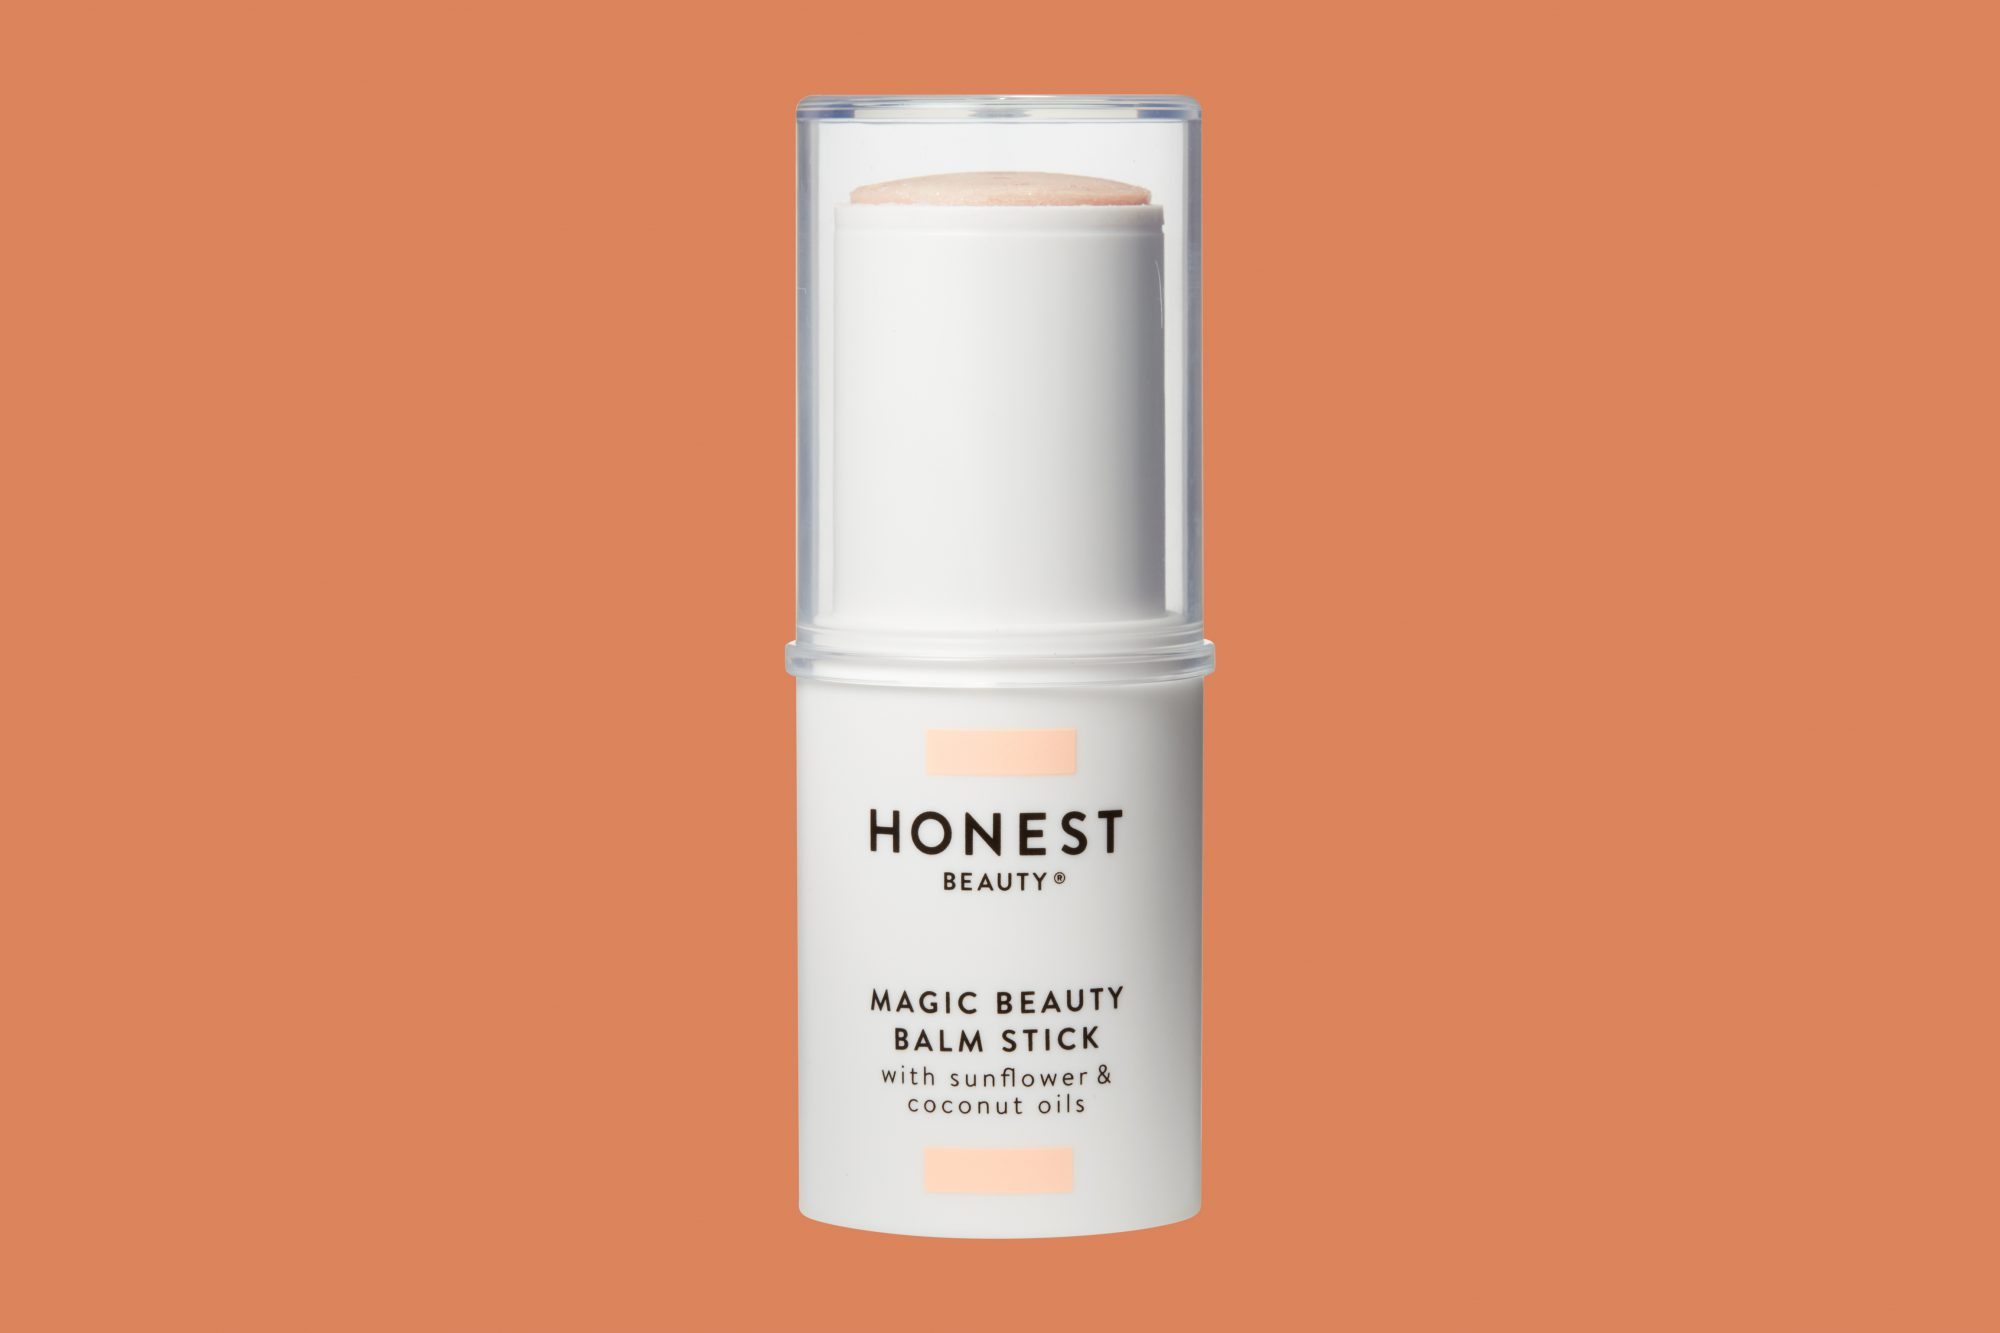 Honest Magic Beauty Balm Stick